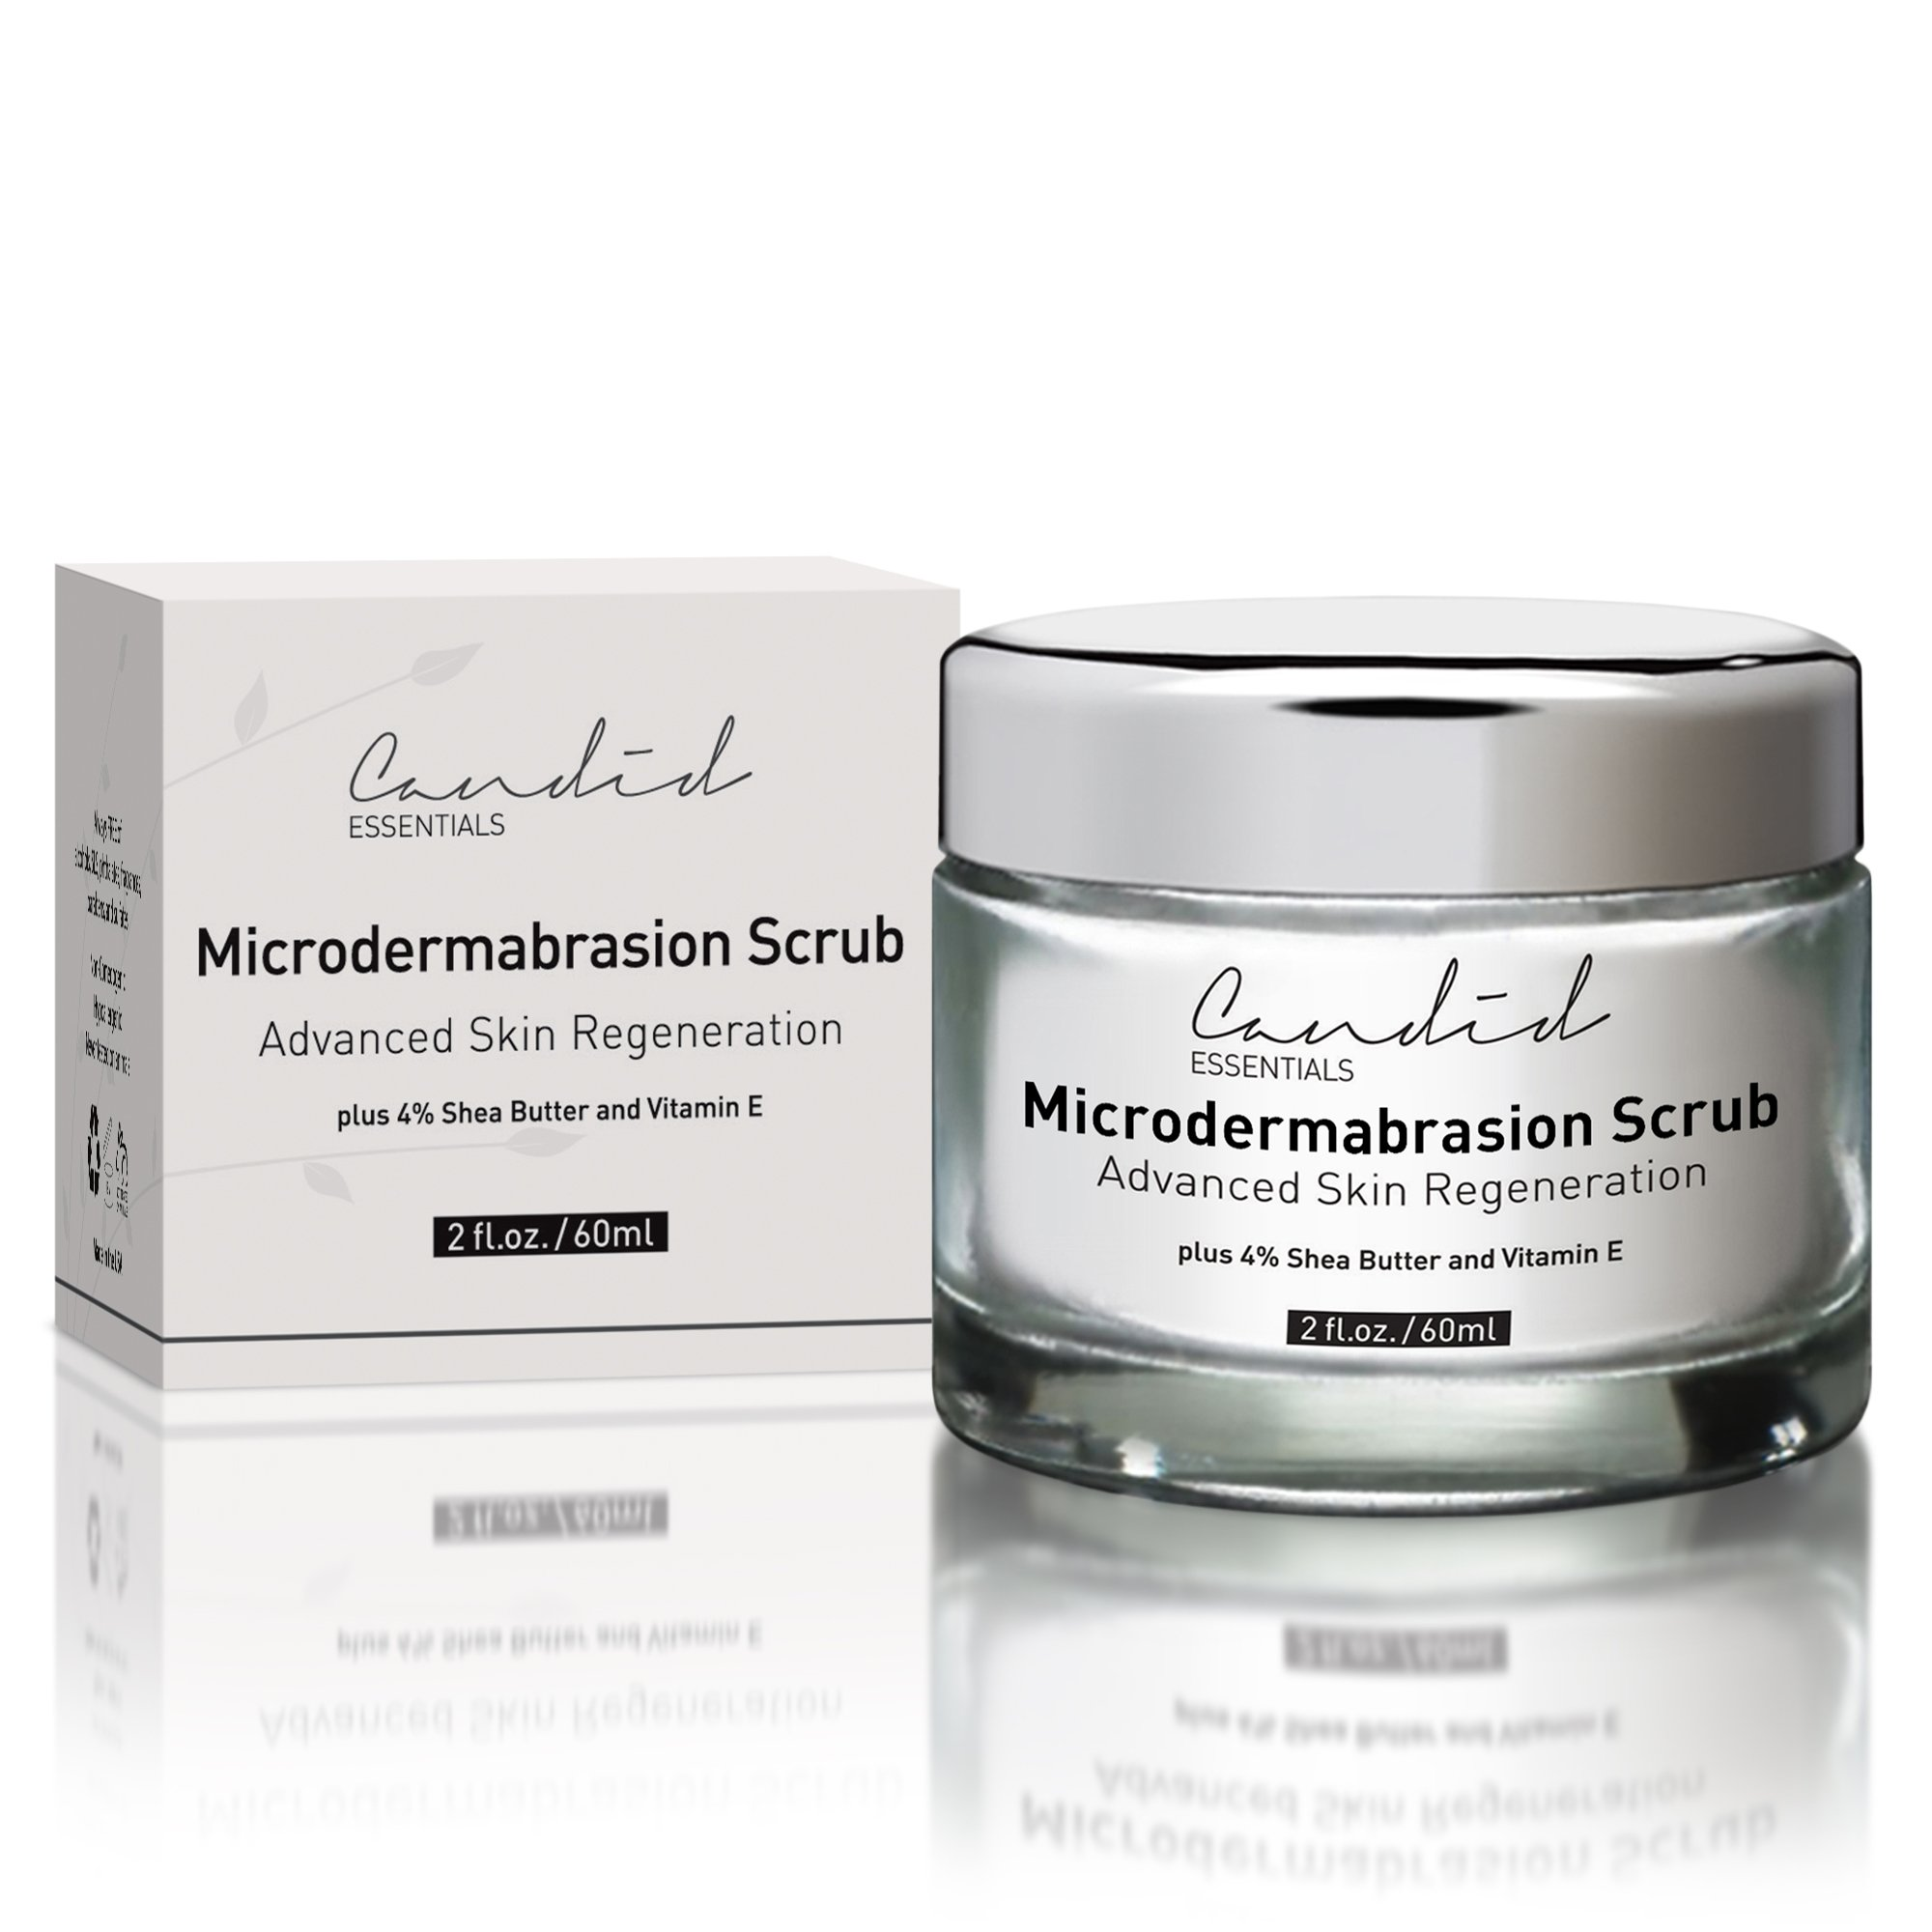 Advanced Microdermabrasion Scrub, A Natural Exfoliating Facial Scrub for Face, Hands & Neck & Décolleté, Anti Aging Skin Care, Proven to Minimize Pores, Wrinkles, Acne Scars & Remove Blackheads. by Candid Essentials